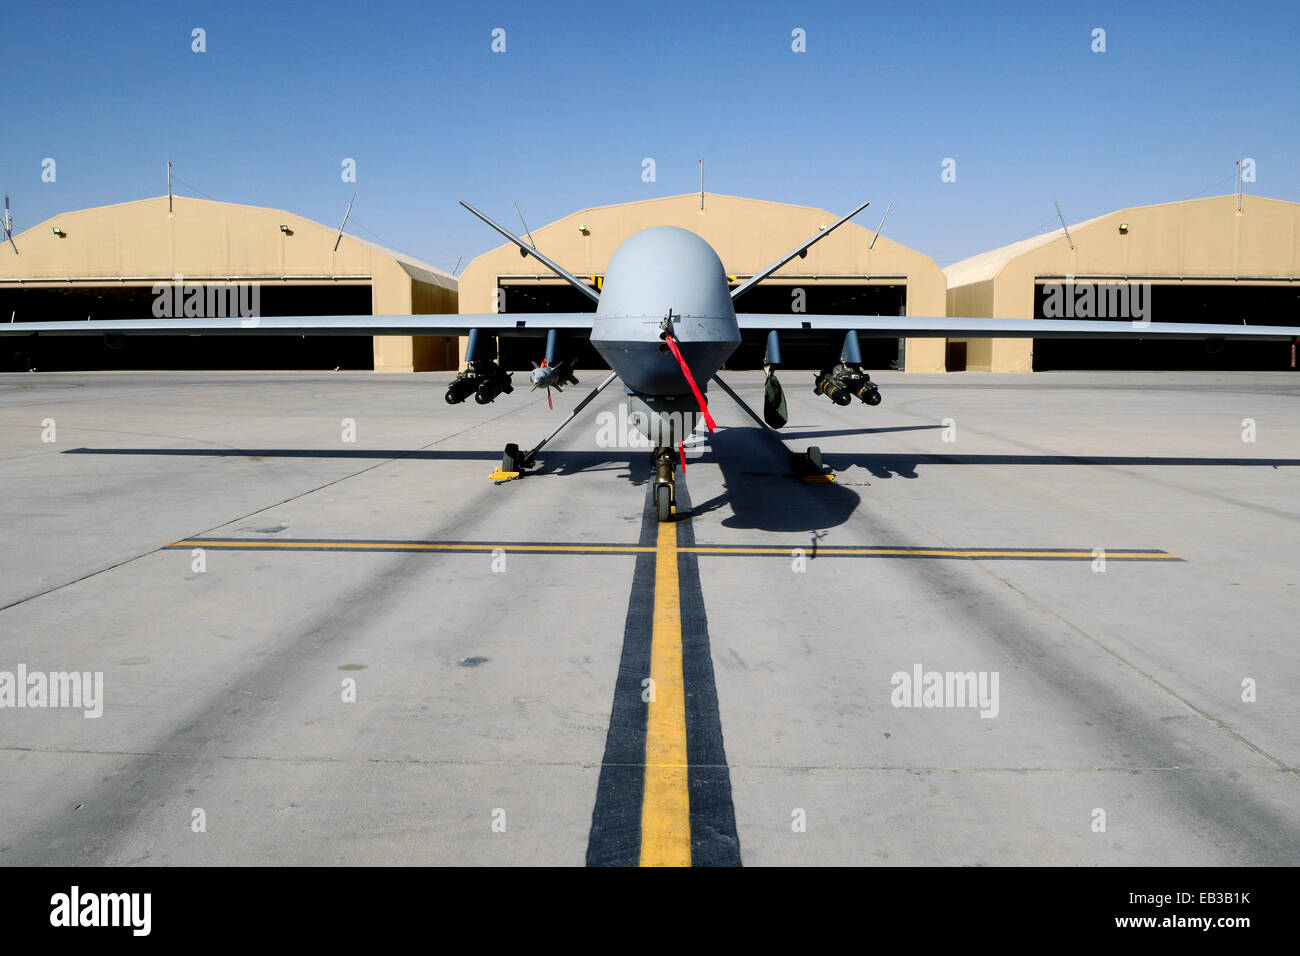 An U.S Air Force MQ-9 Reaper with the 62nd Expeditionary Reconnaissance Squadron sits on a ramp at Kandahar Airfield - Stock Image